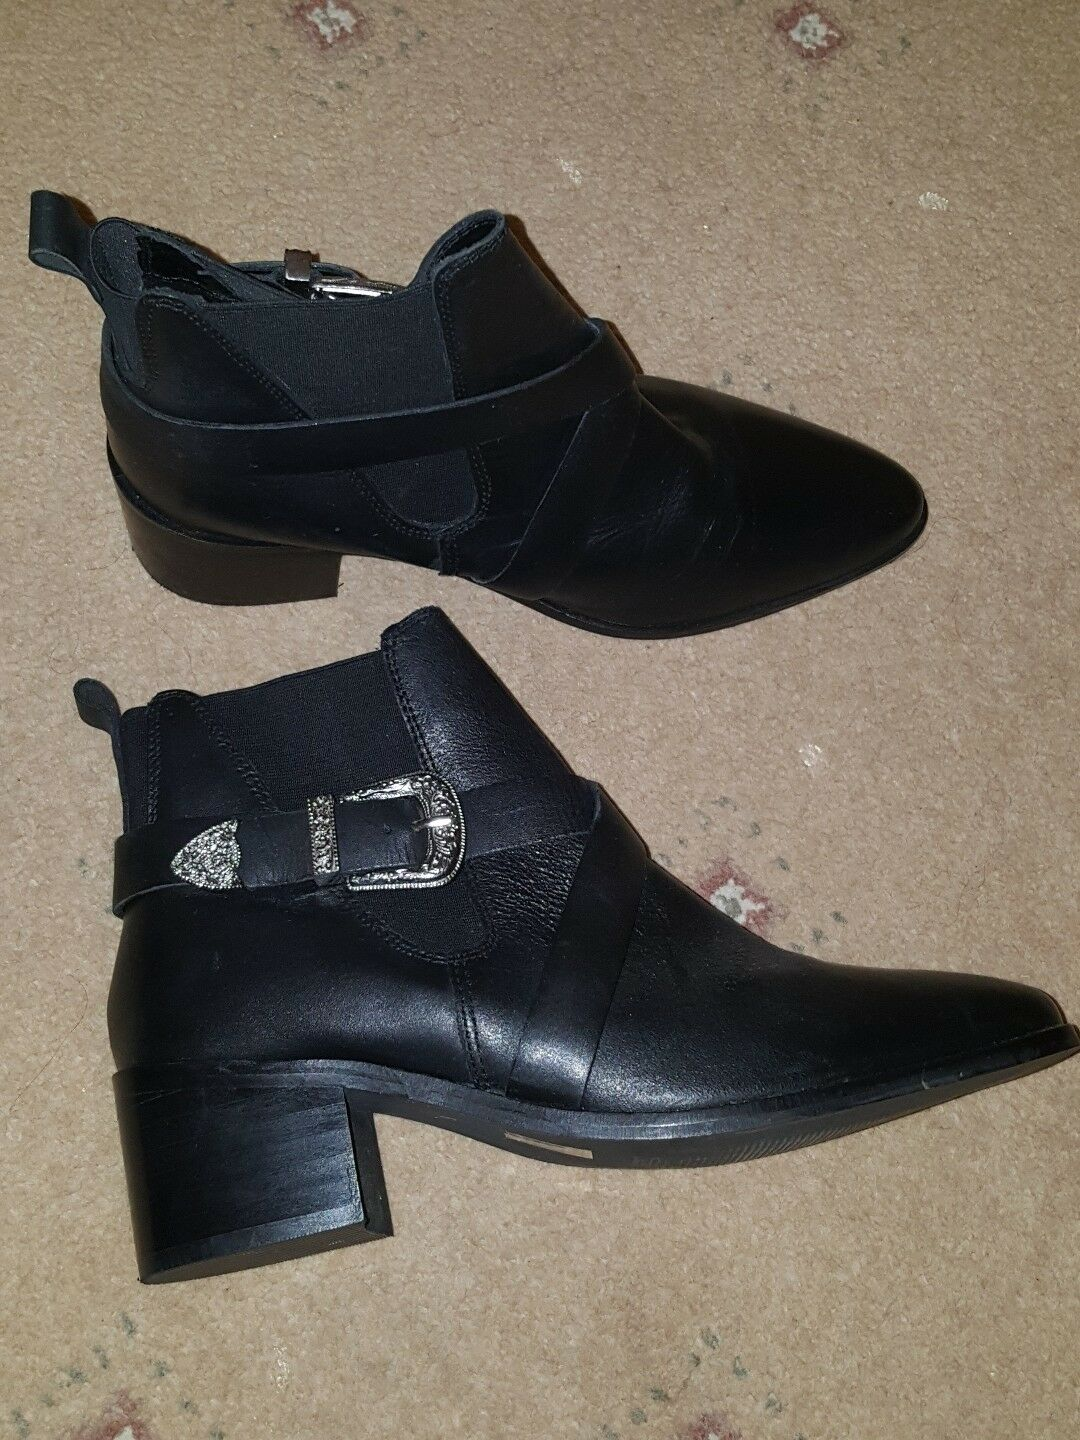 WORN ONCE RIVER ISLAND BLACK POINTED TOE LEATHER BUCKLE 6 ANKLE Stiefel Schuhe SIZE 6 BUCKLE d9be33